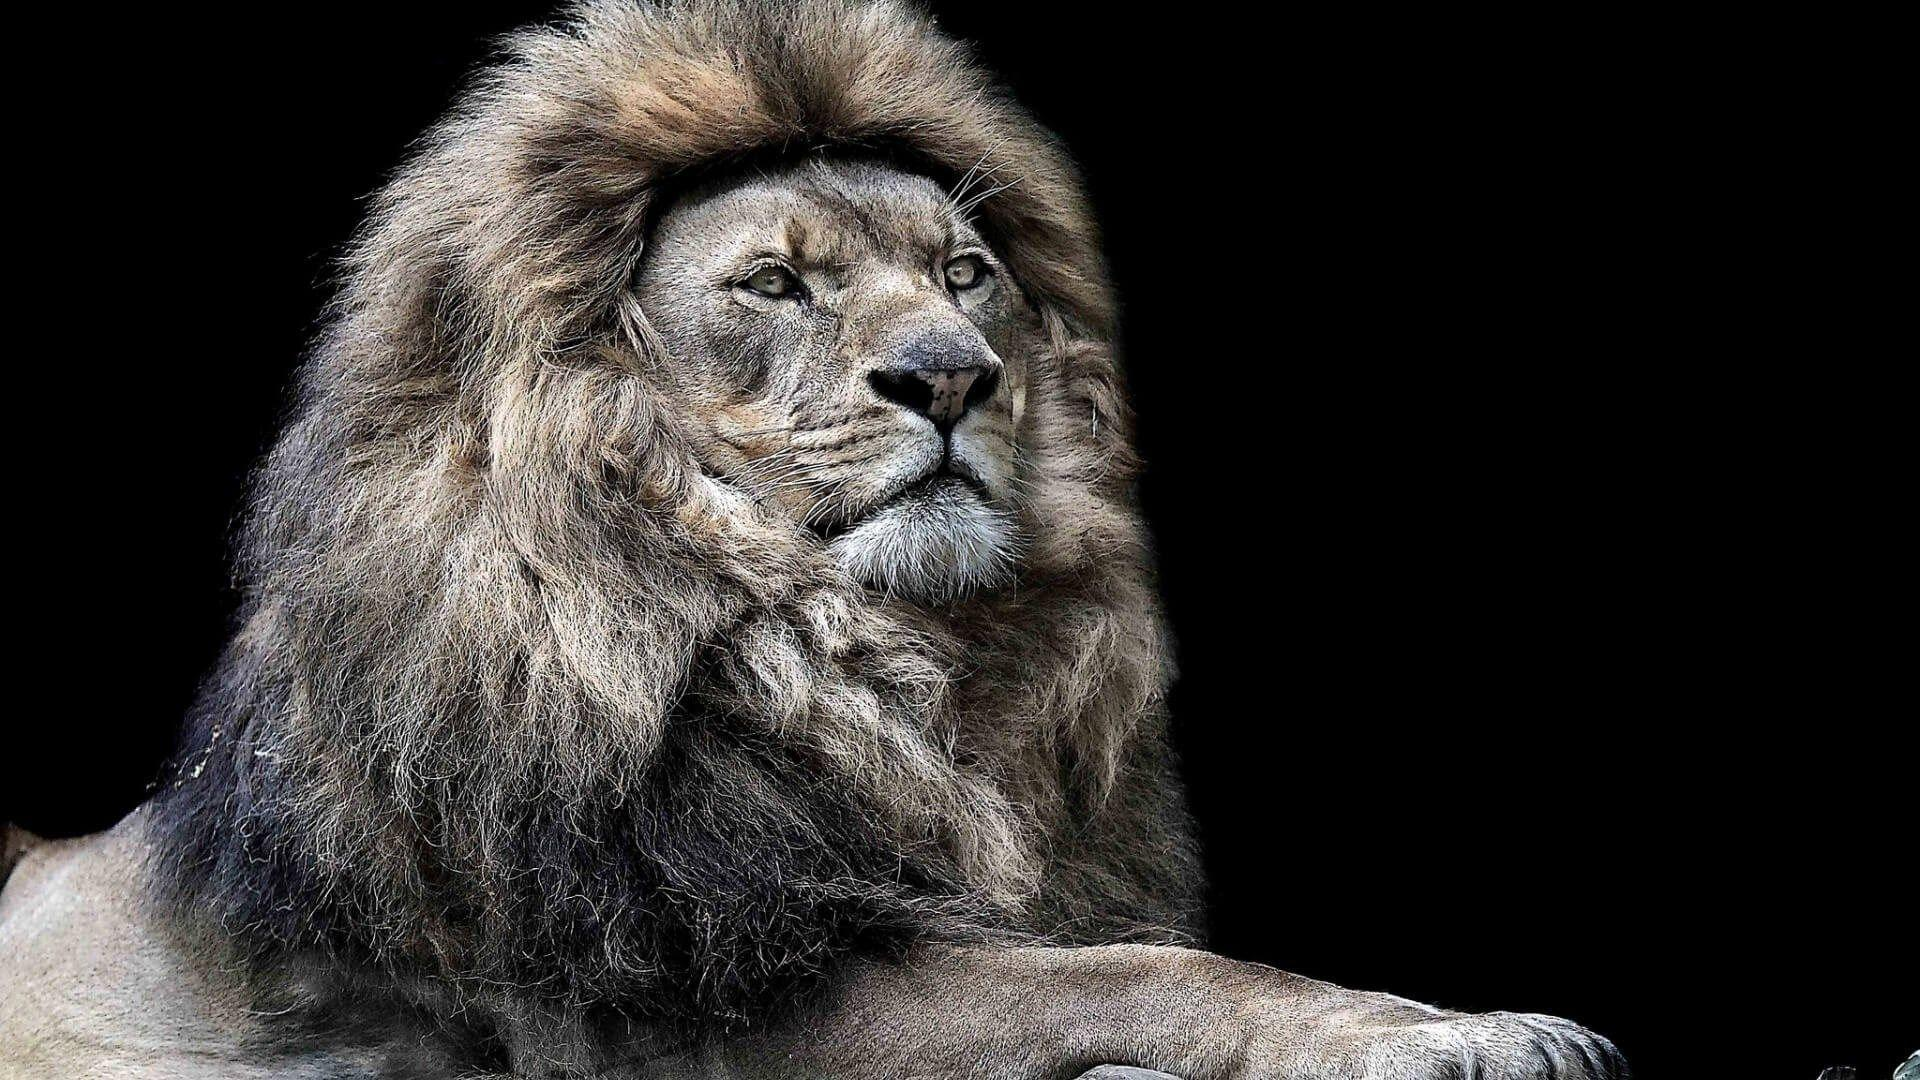 Angry Lion Face Wallpapers - Wallpaper Cave